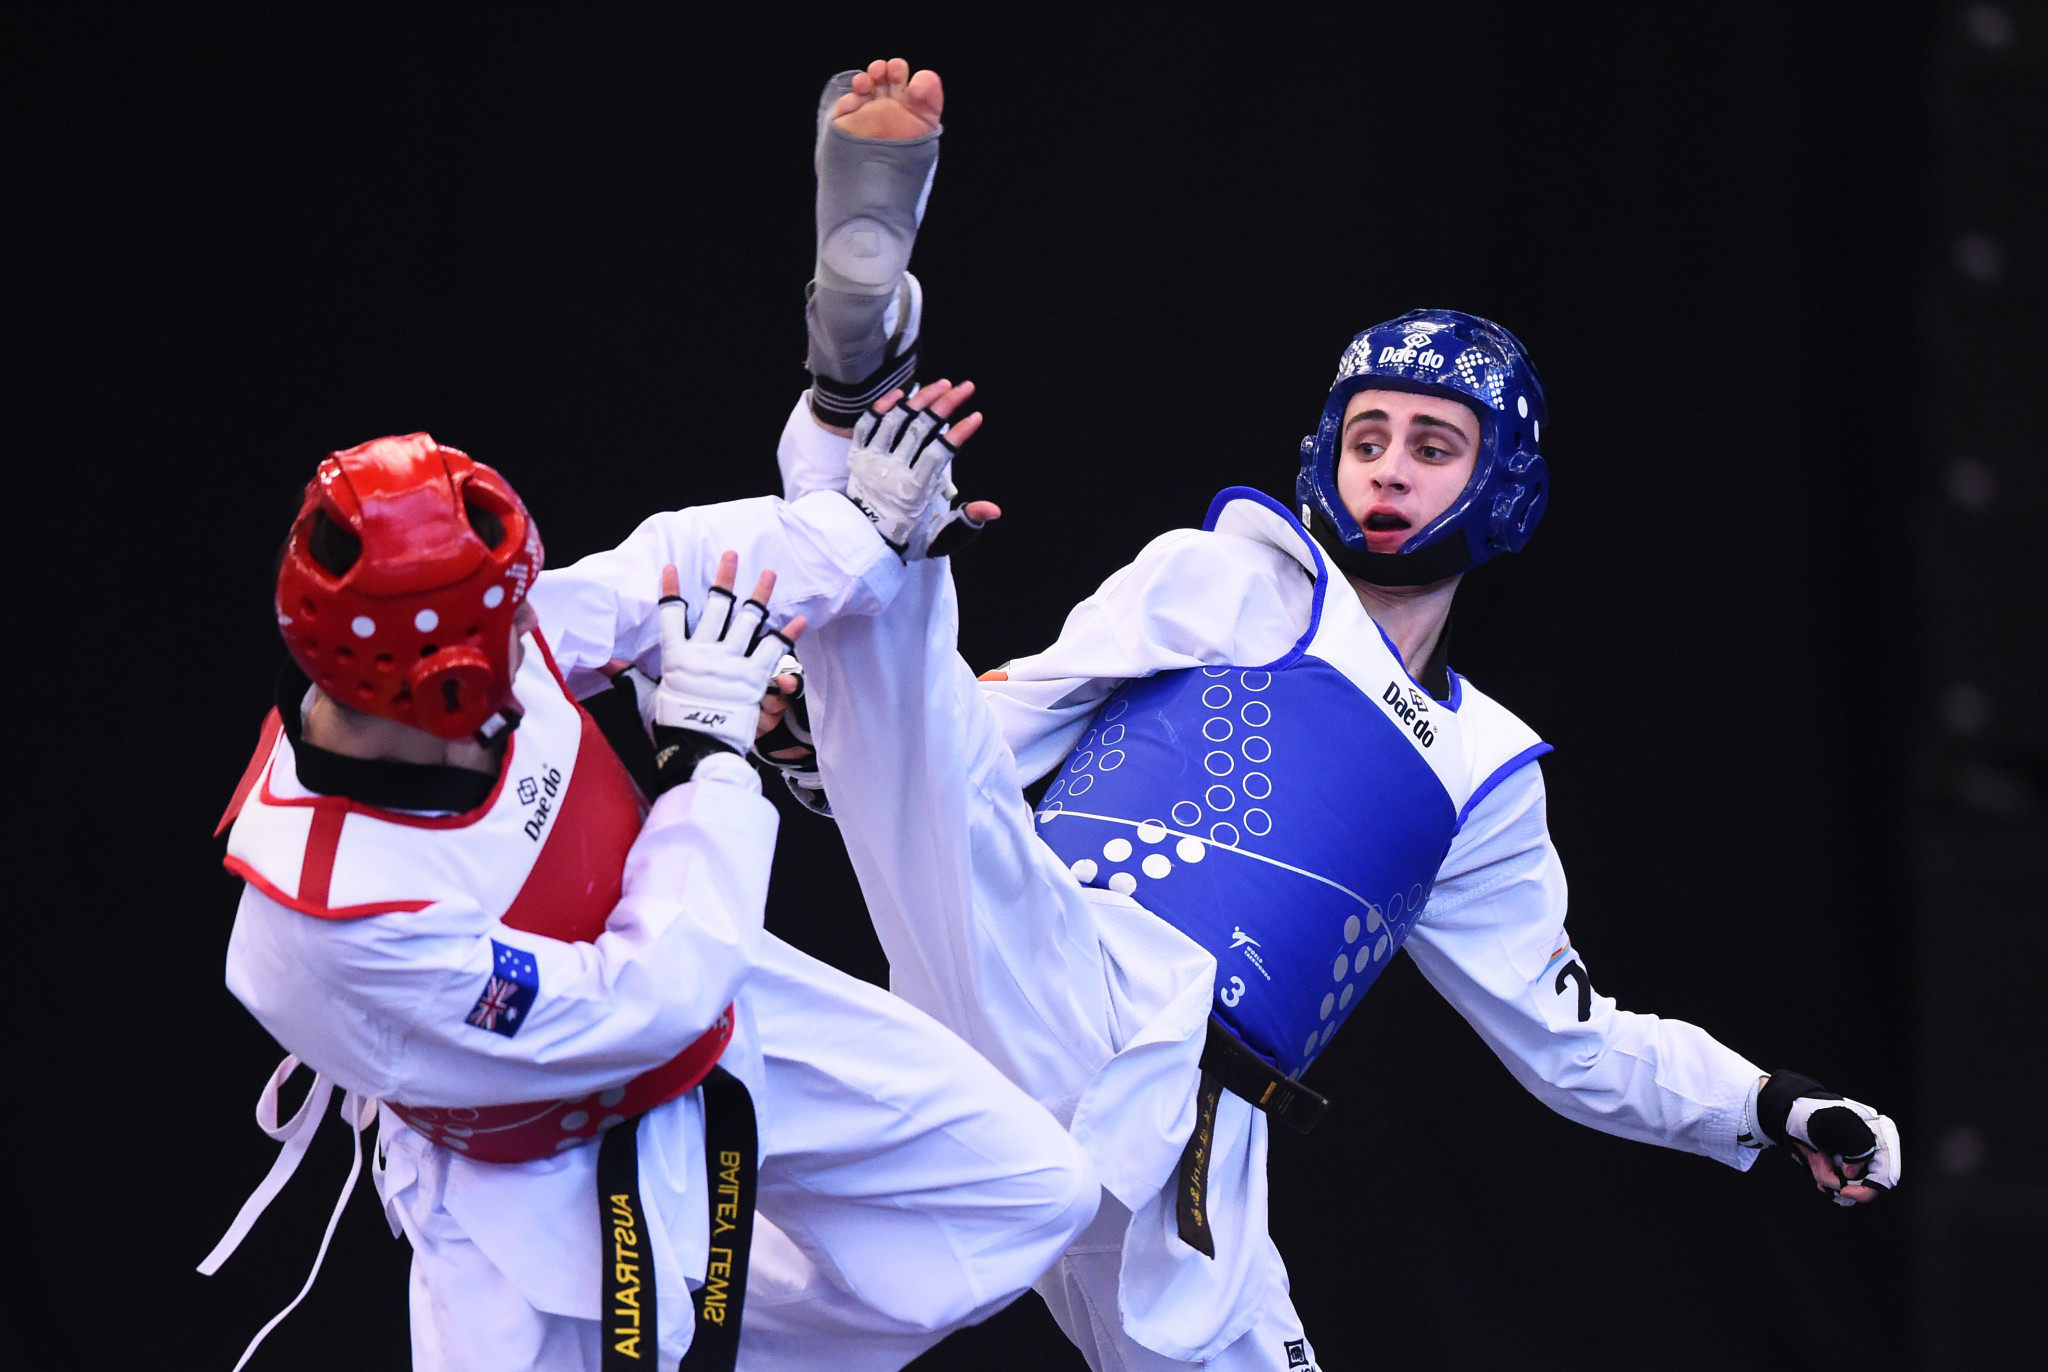 Woolley officially picked in Irish team for Tokyo 2020, will be Ireland's first taekwondo Olympian